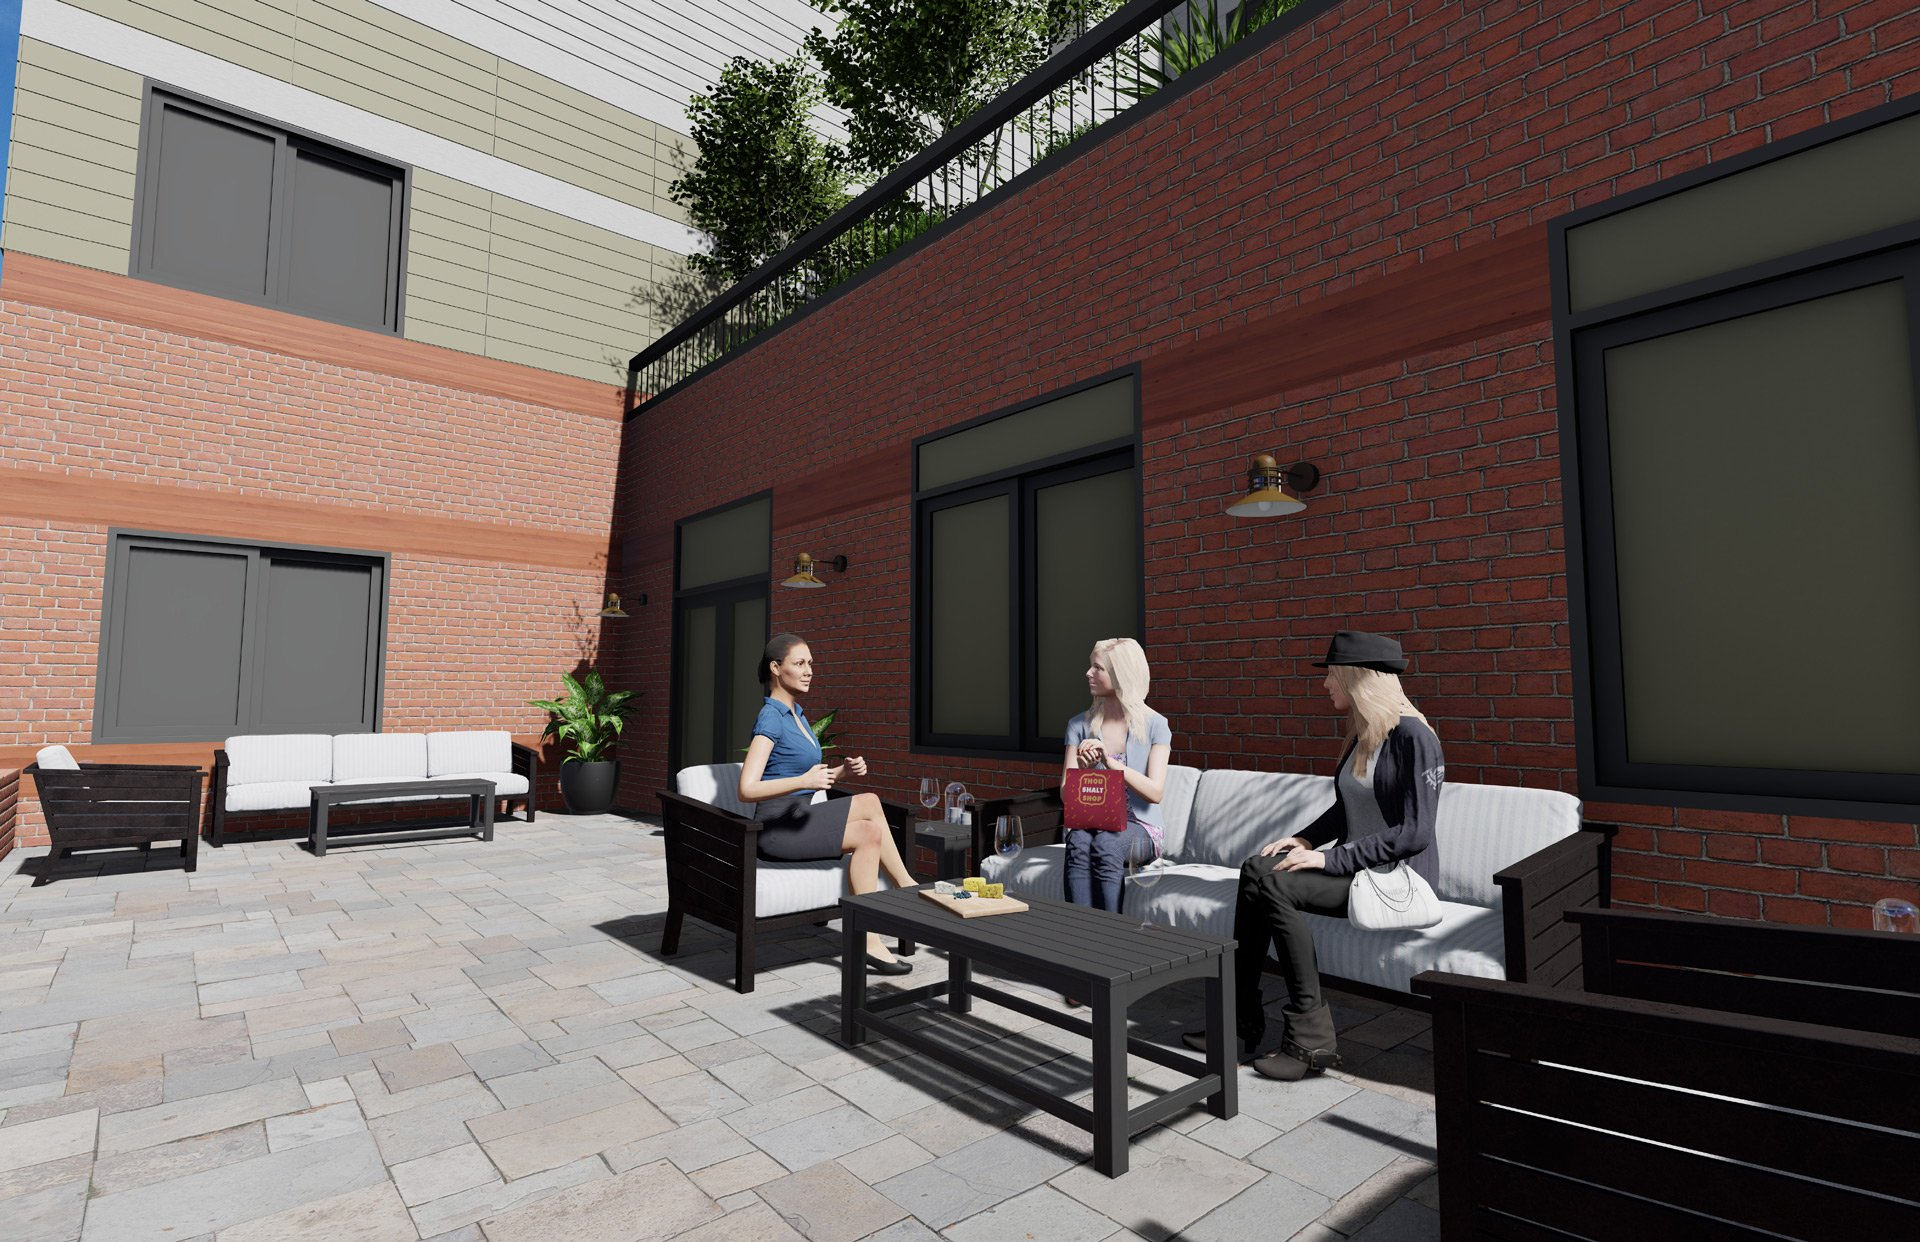 murphy-brothers-contracting-commercial-harrison-playhouse-exterior-terrace-01